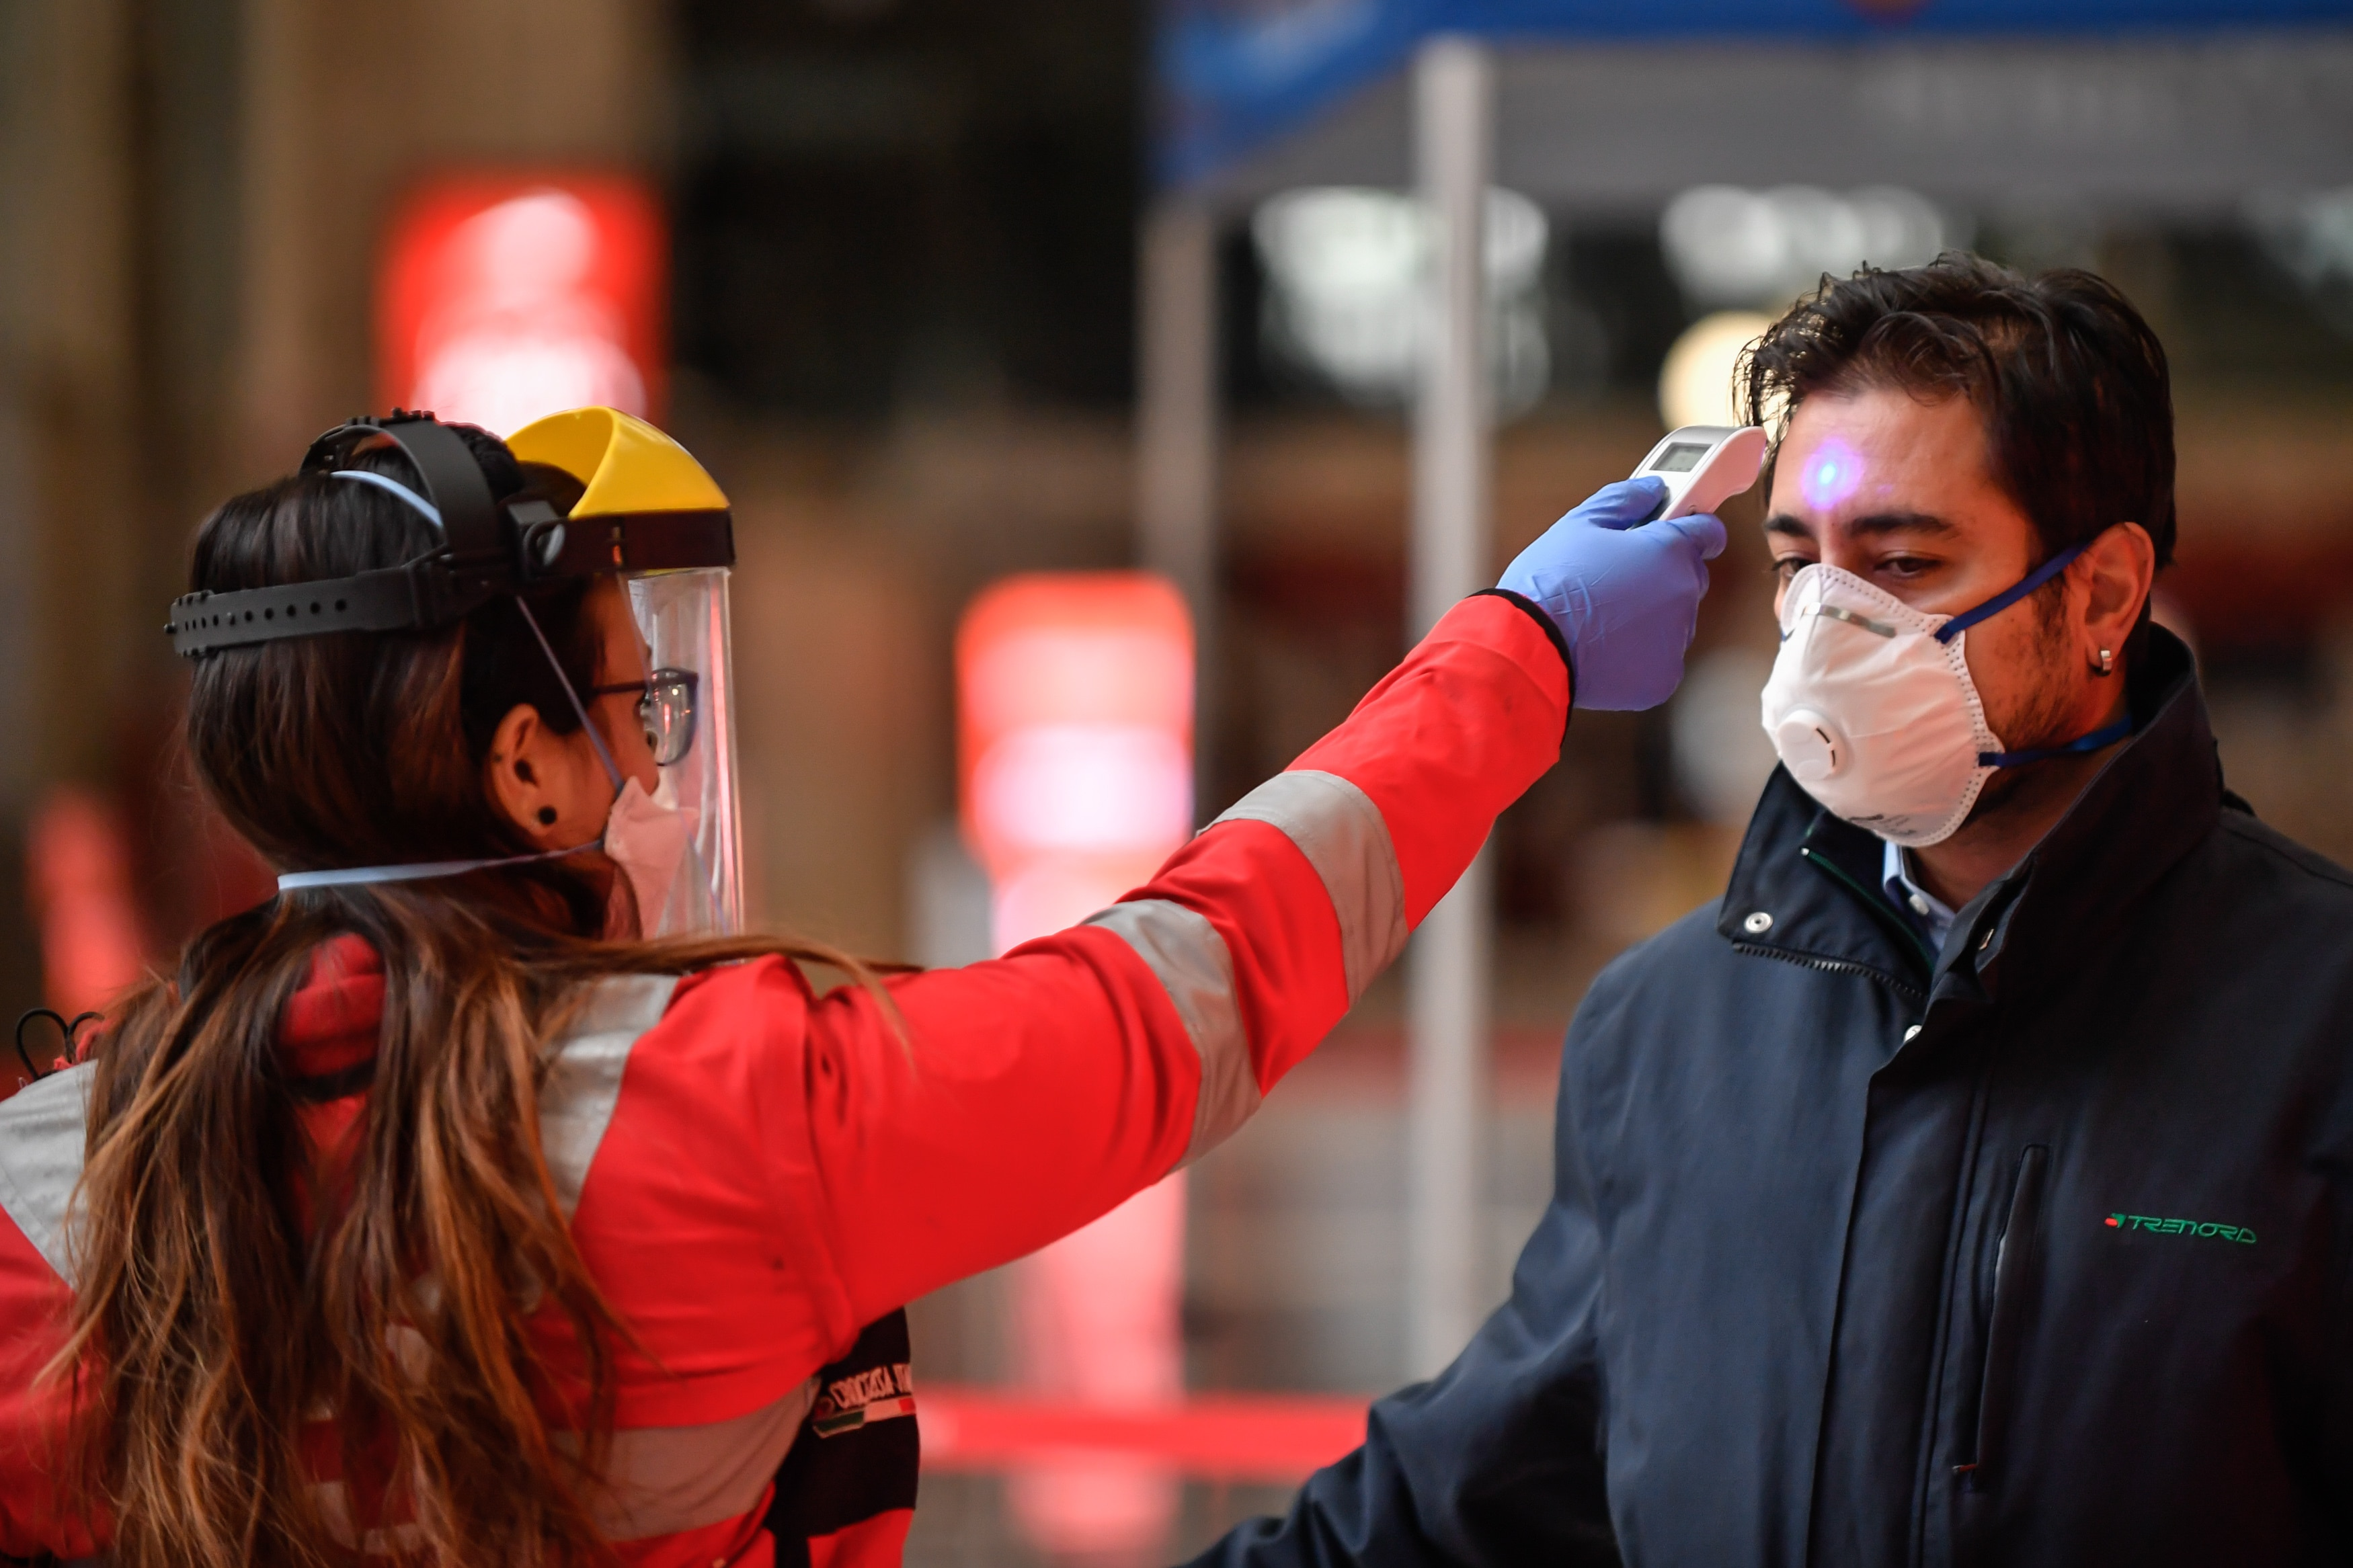 25 March 2020 Milano (Italy).Military and railway police checks at the access gates for departures in a deserted central station.In the photo: the detection of body temperature by health personnel (Photo by Claudio Furlan/LaPresse/Sipa USA)